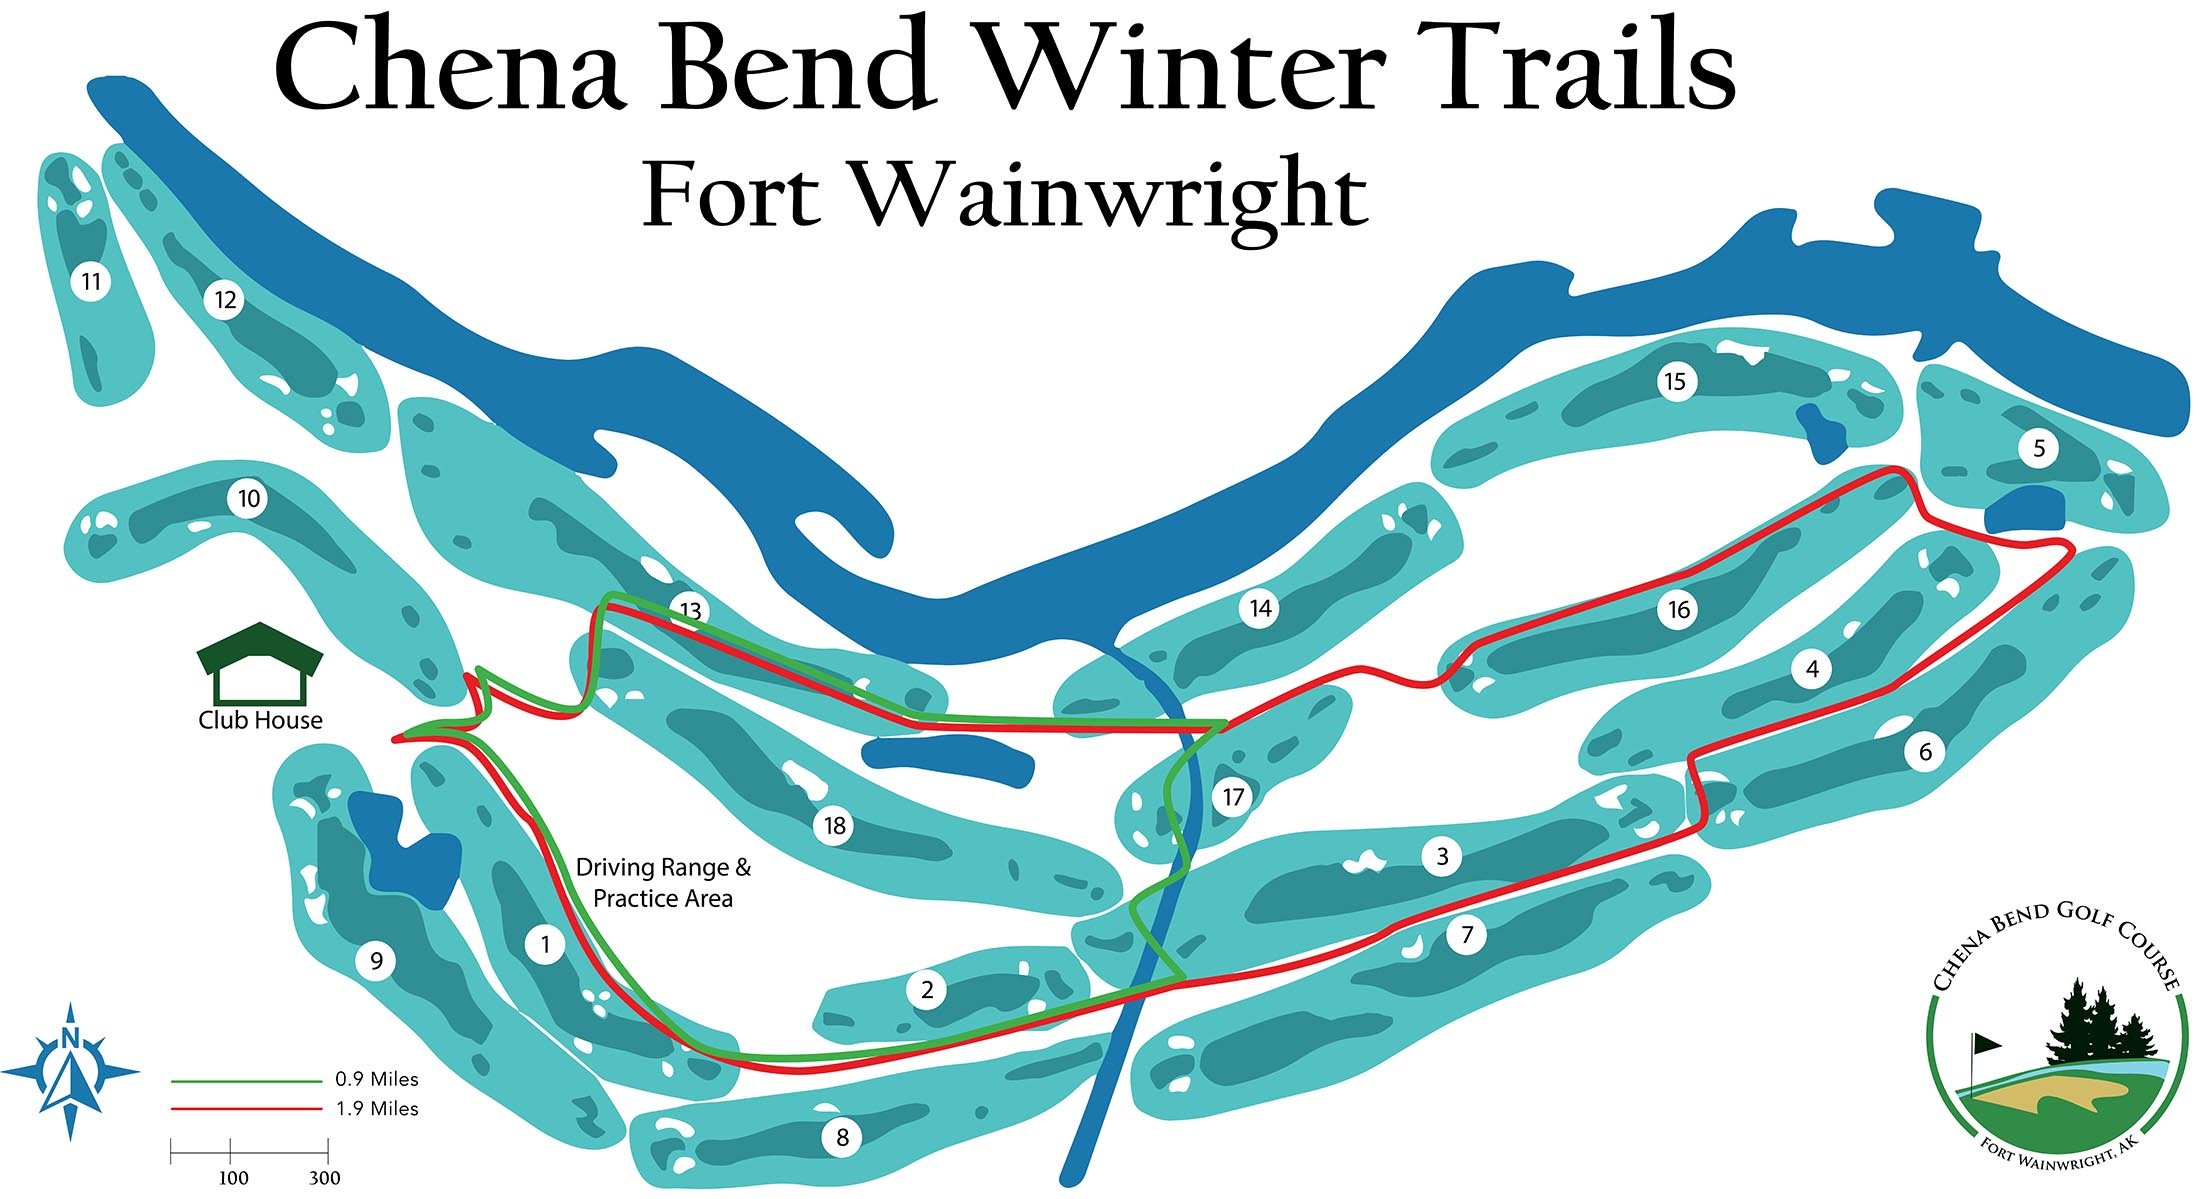 Wainwright_Chena_Bend_Golf_Course_Cross_Country_Ski_Trails_Map_Winter_reduced.jpg